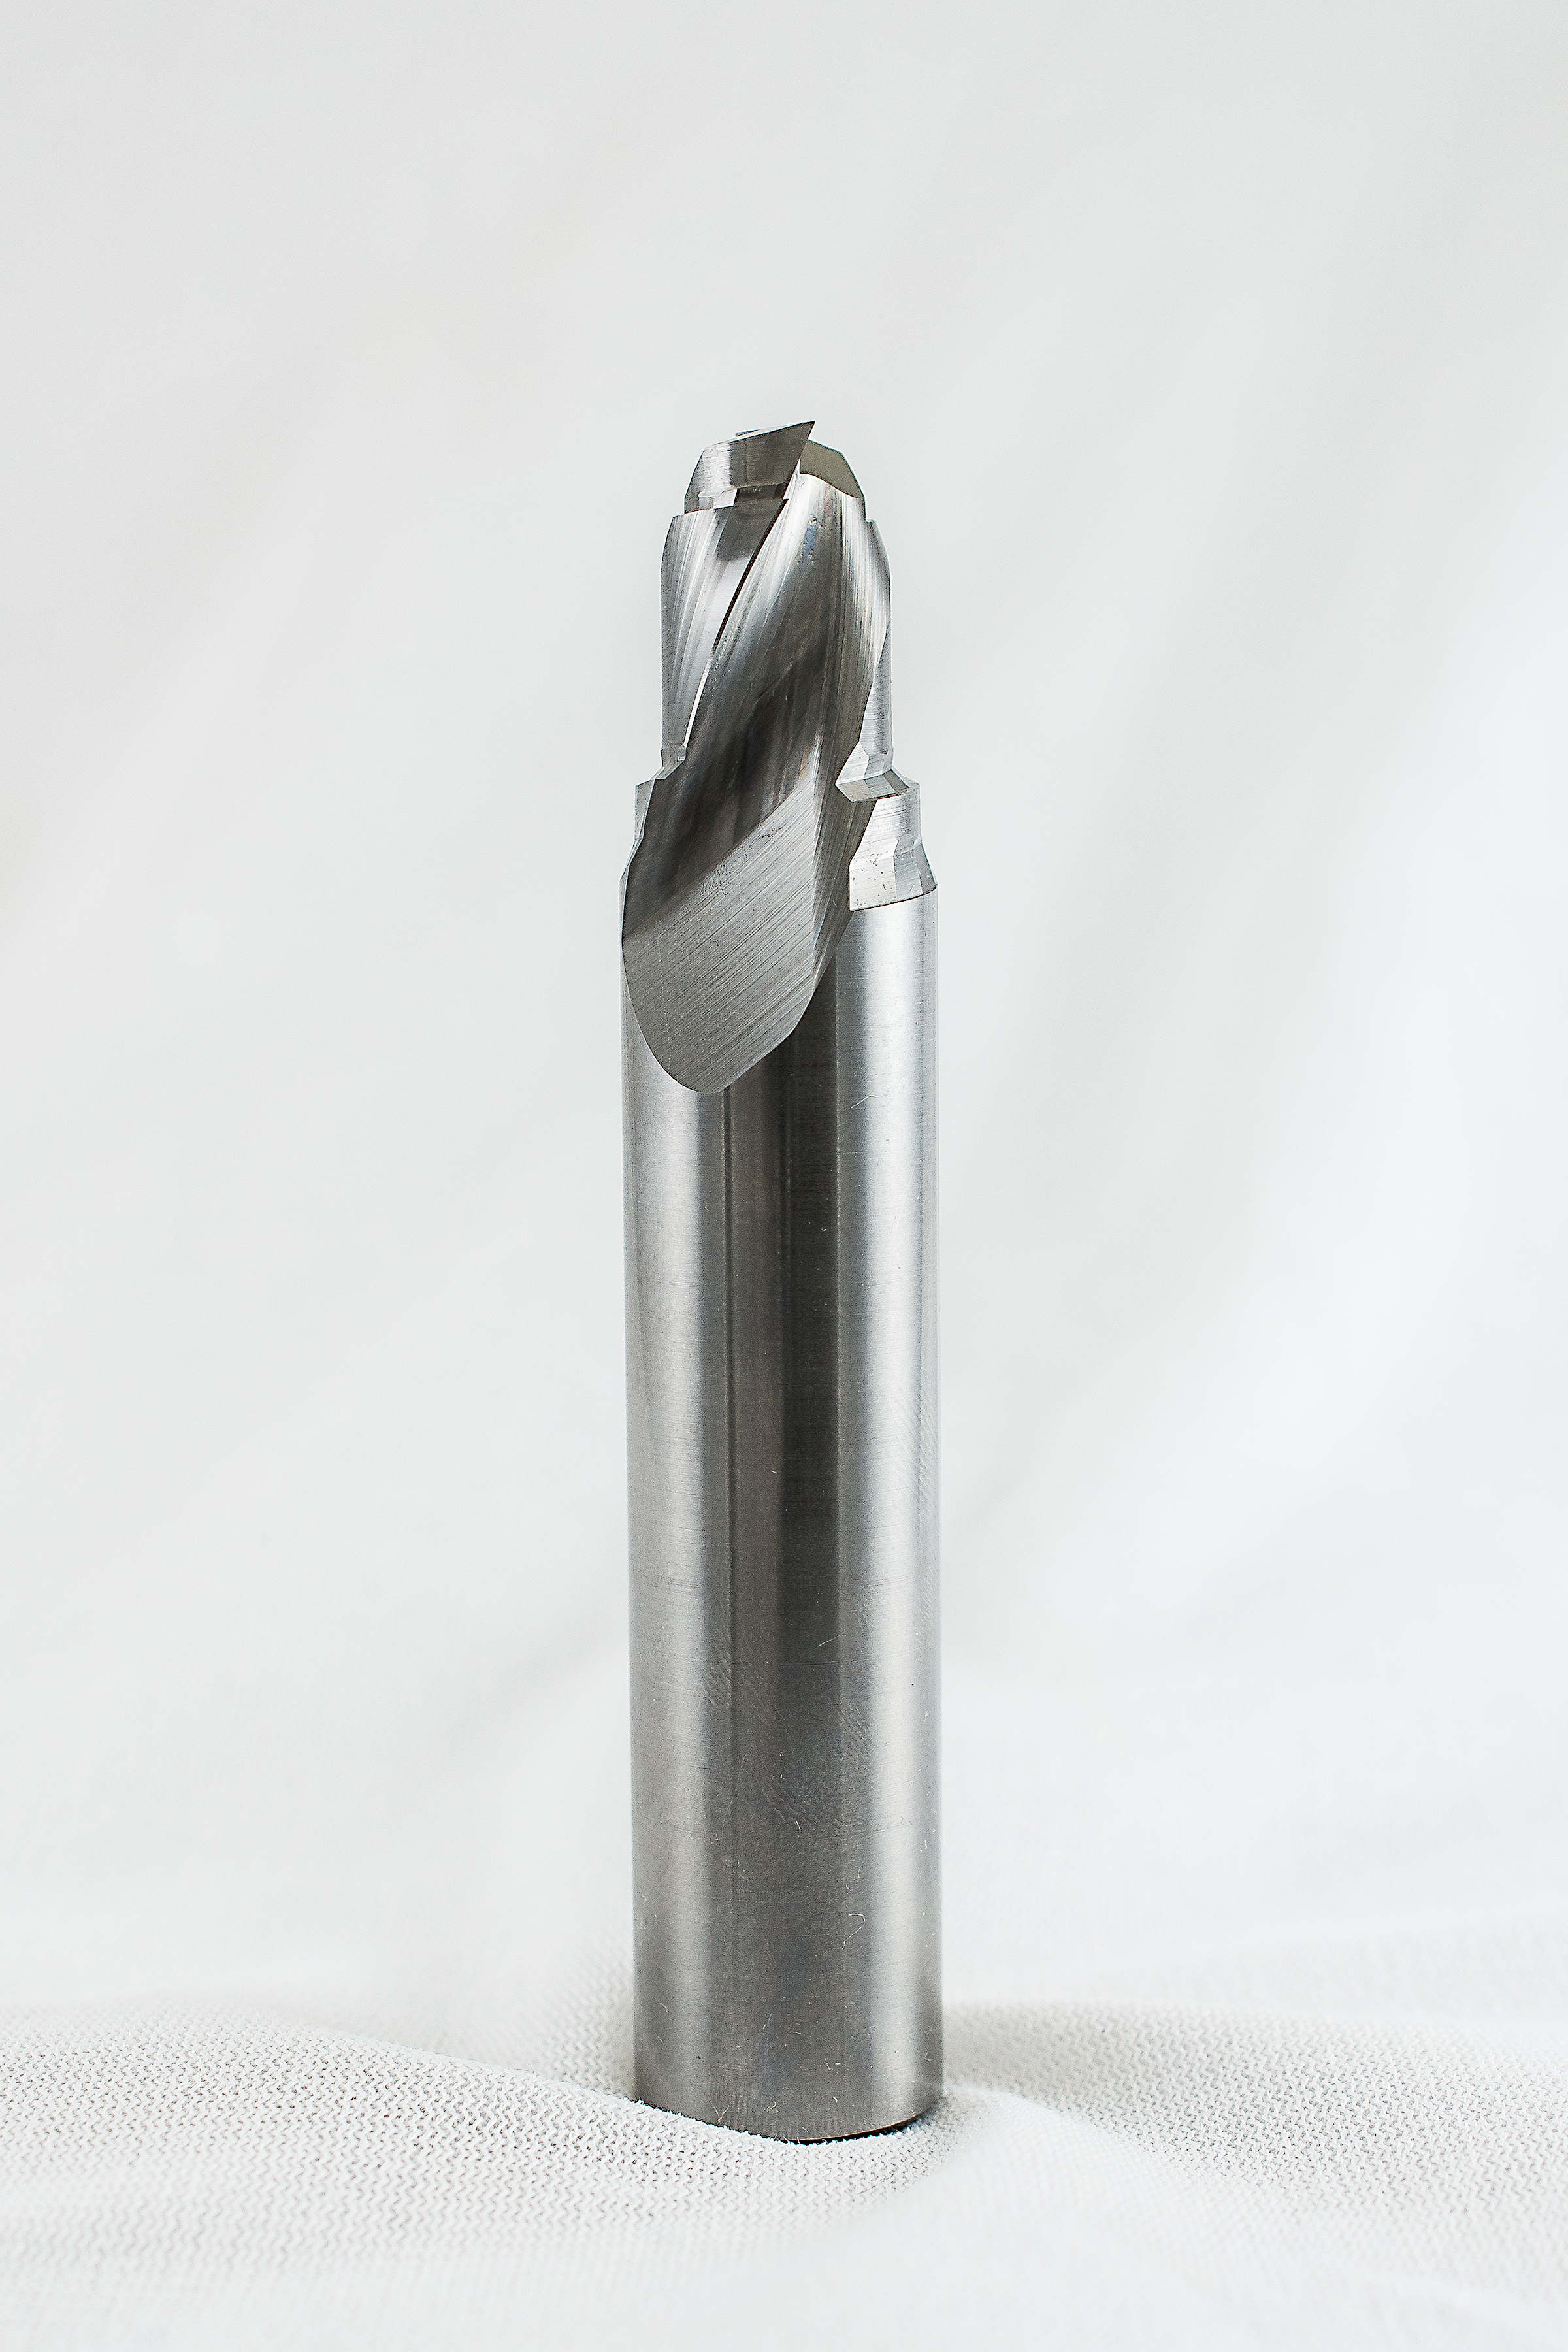 image of Carbide and HSS Form Milling Cutters